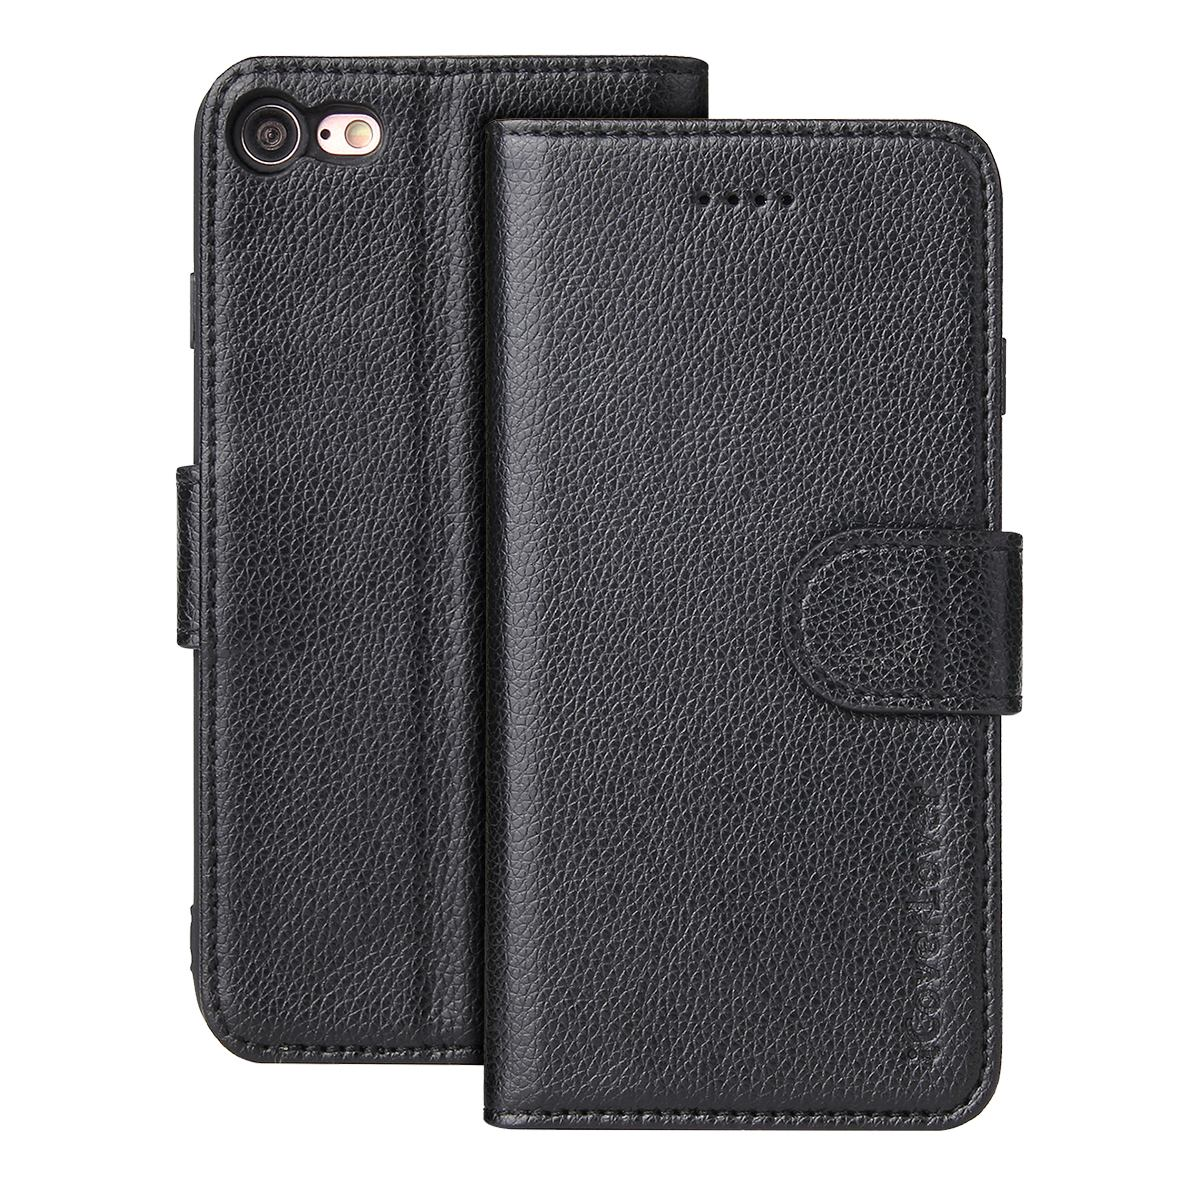 For iPhone SE (2020),8 & 7 Cover,Top-grain Leather Wallet Case,Black